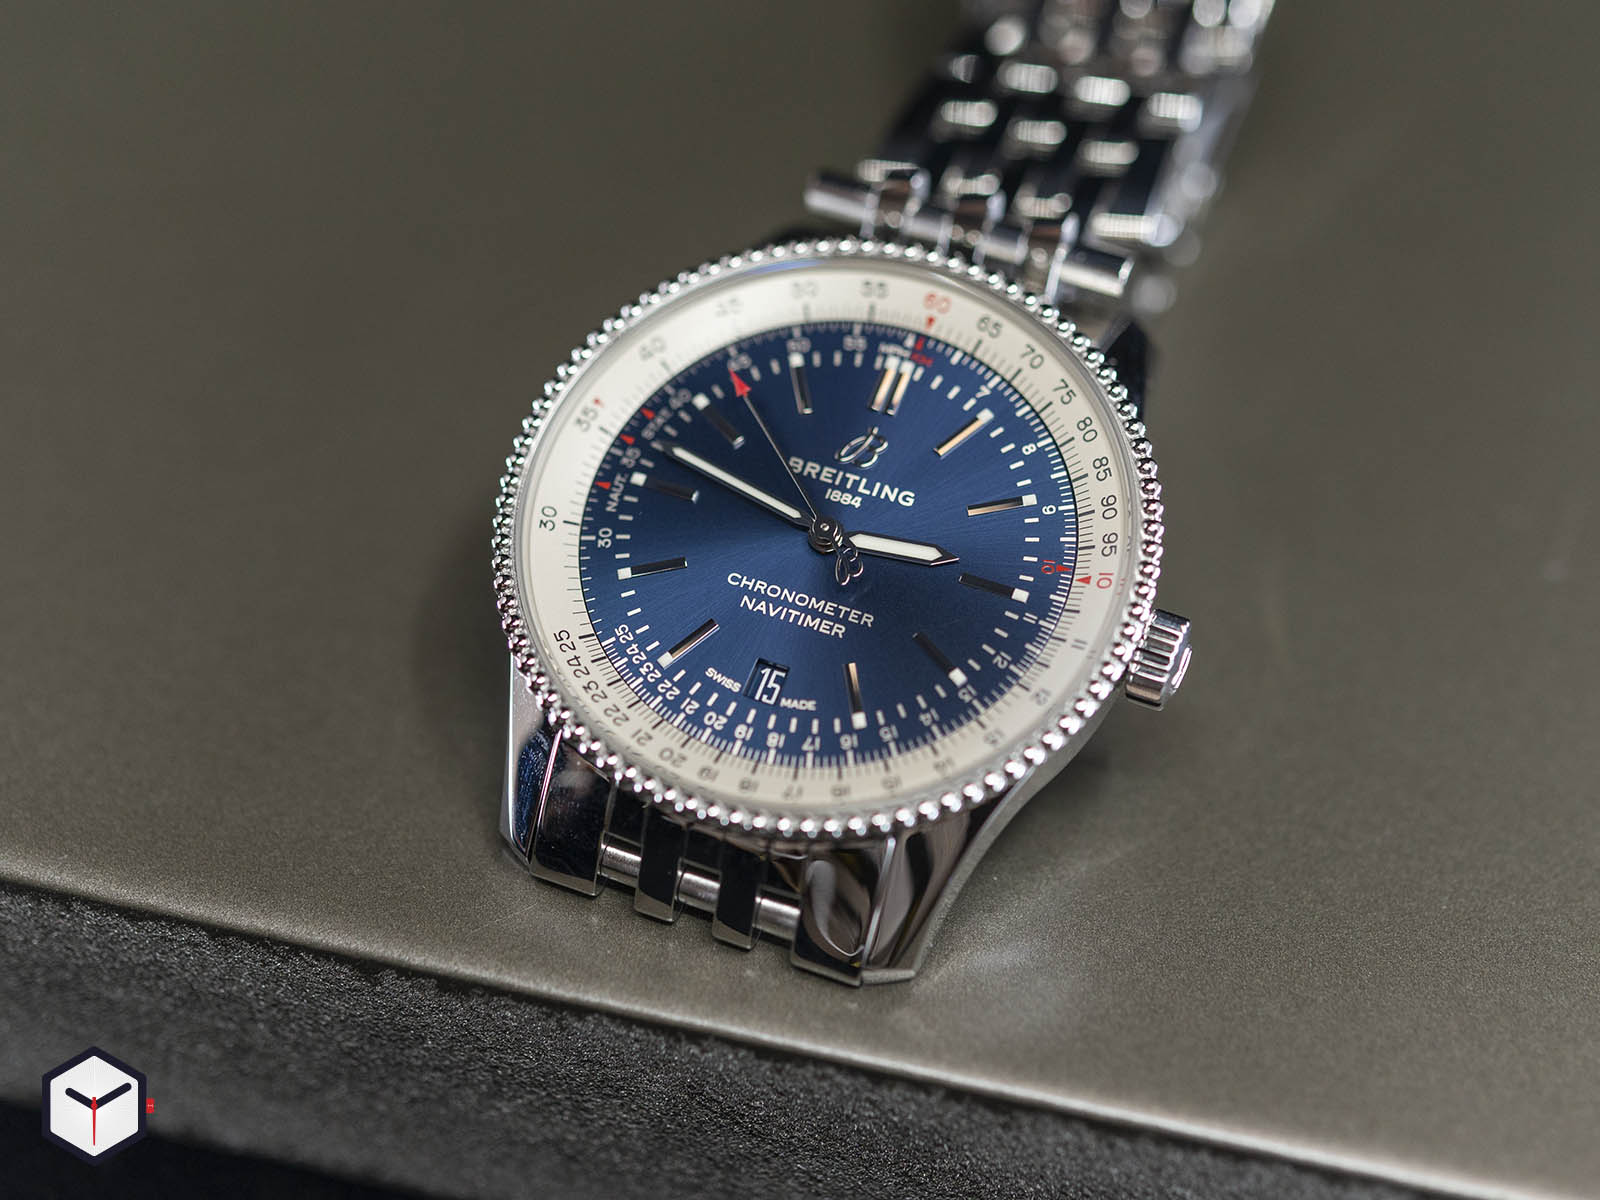 a17326211c1a1-breitling-navitimer-1-automatic-41-1.jpg